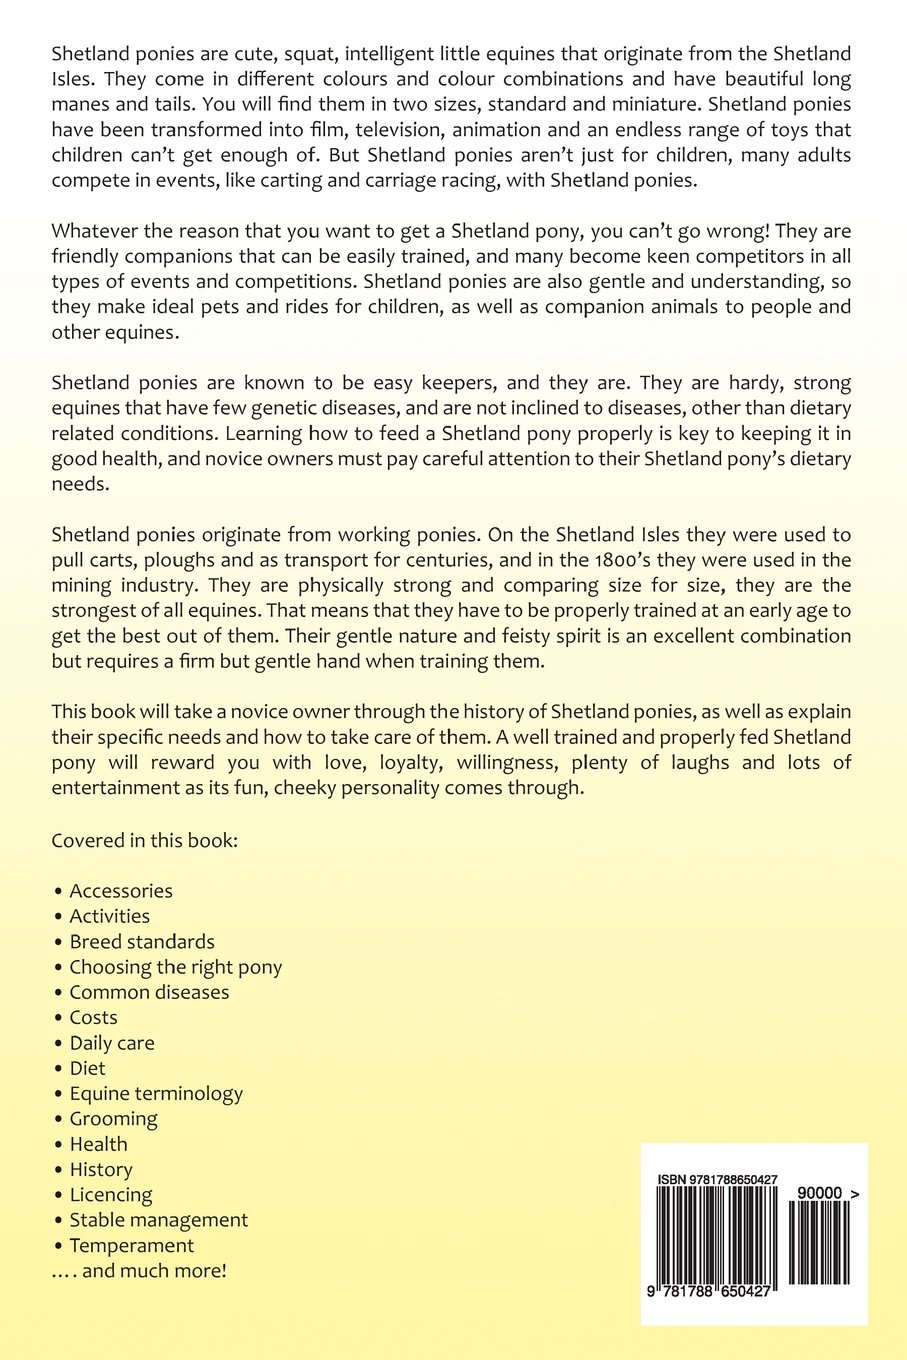 Shetland Pony Owner's Manual. Shetland Pony book for care, costs, health,  diet and grooming.: Amazon.co.uk: Emily Peterson: 9781788650427: Books